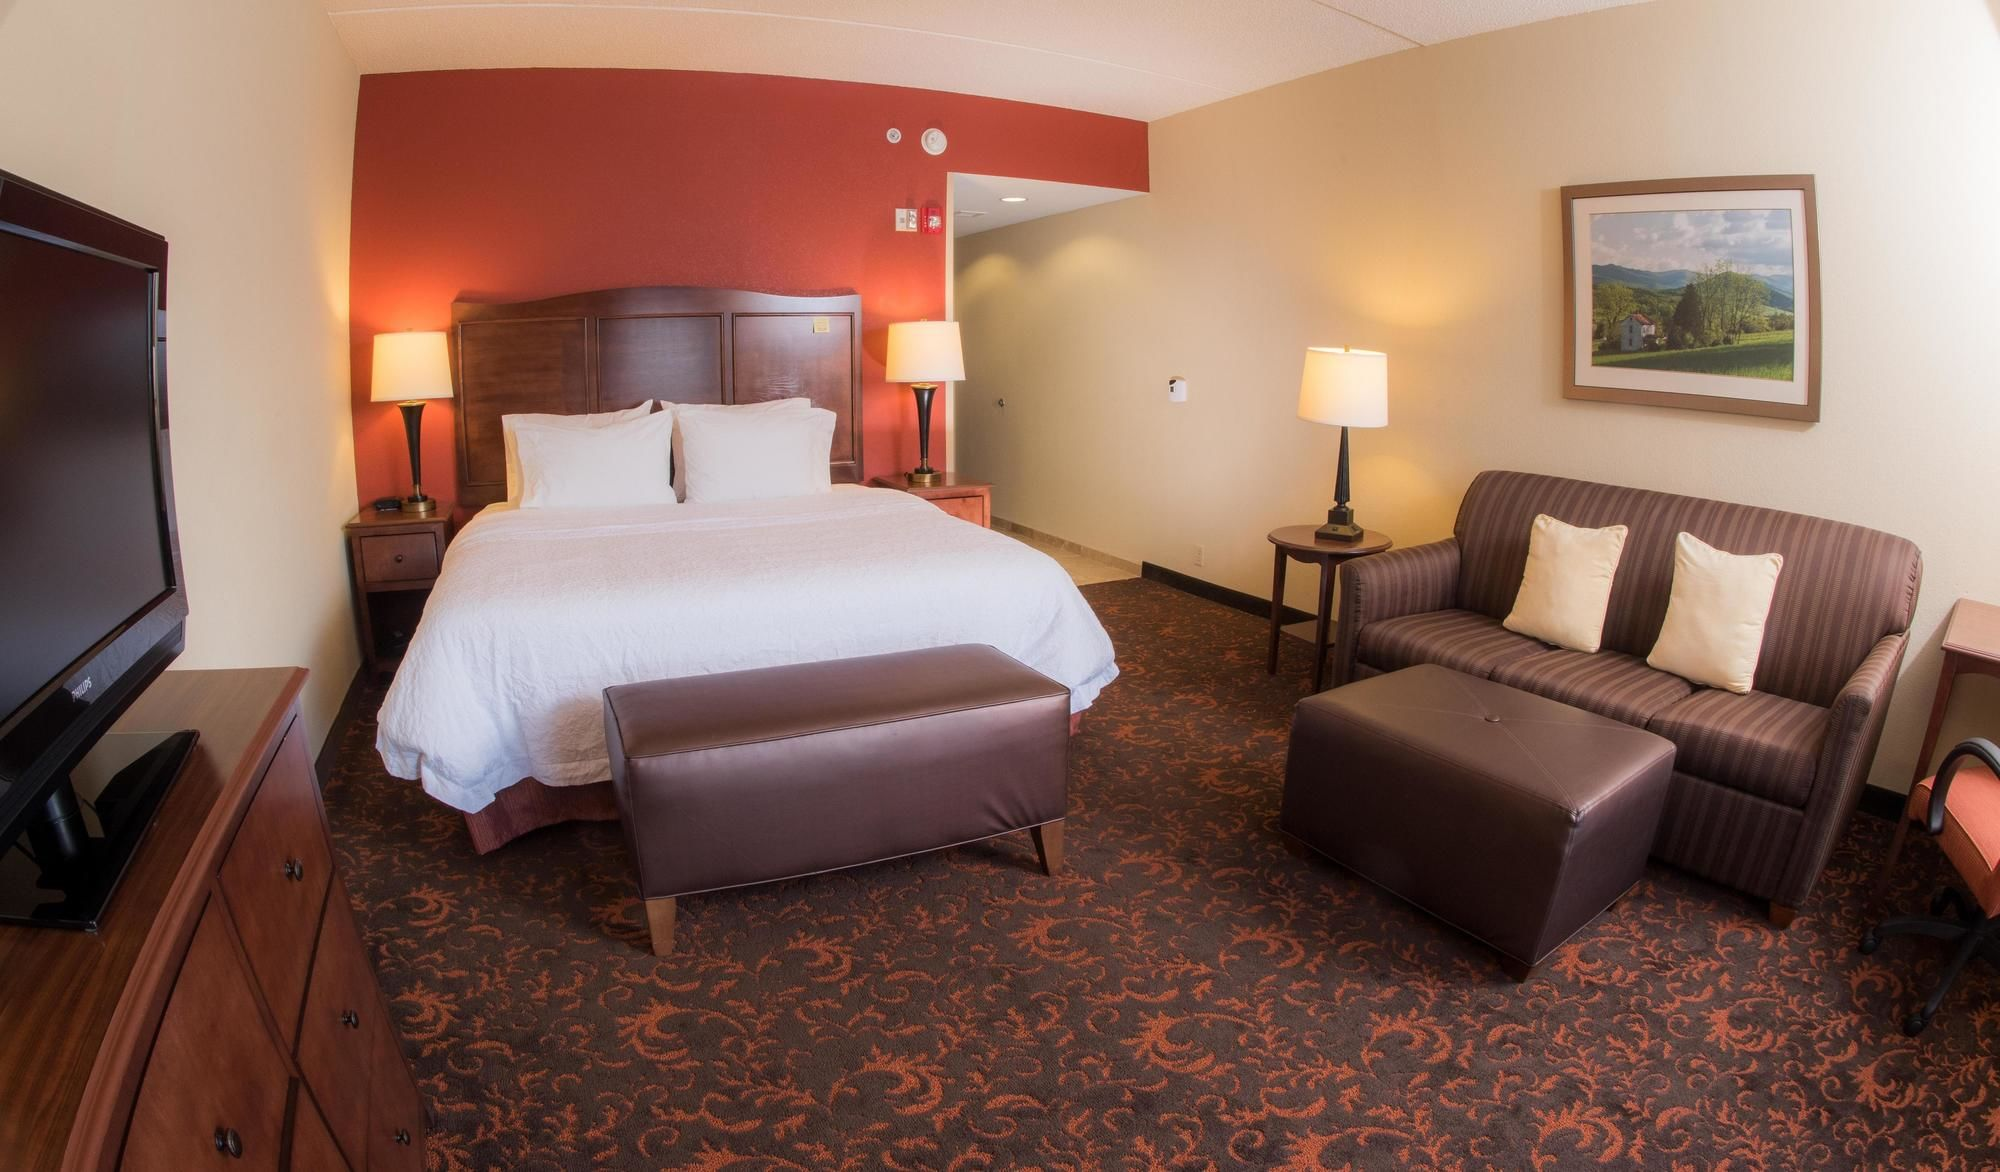 Hampton Inn & Suites in Woodstock, VA